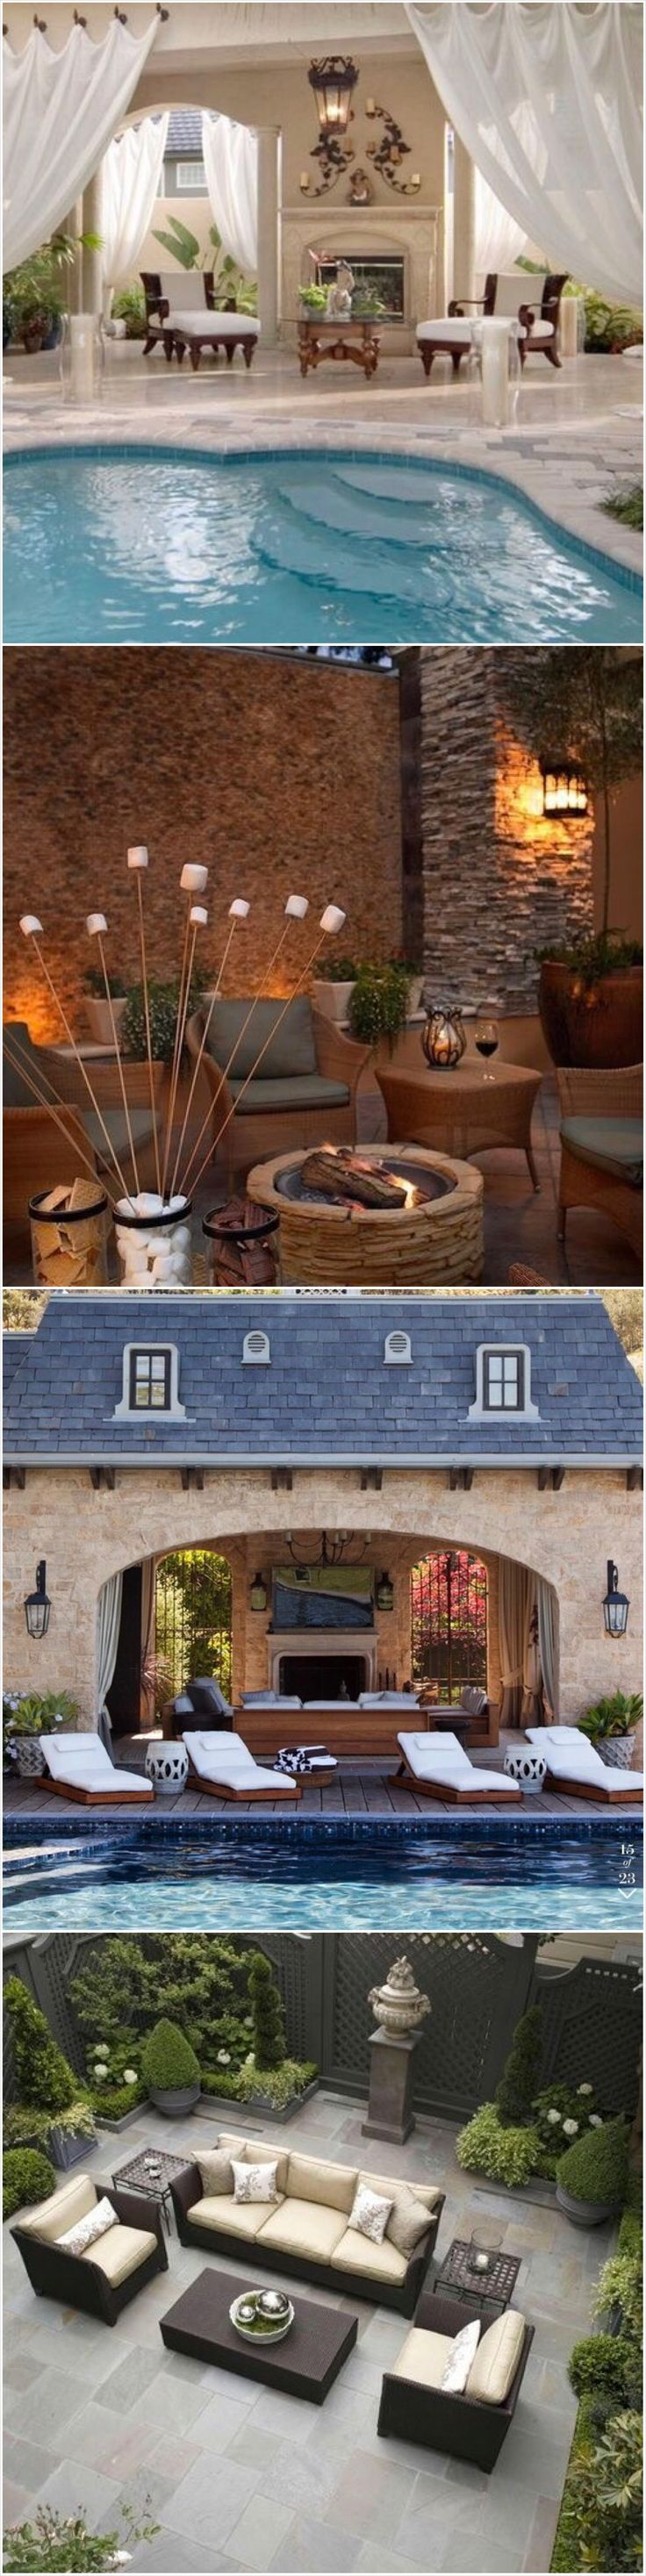 2442 best outdoor living images on pinterest pools outdoor